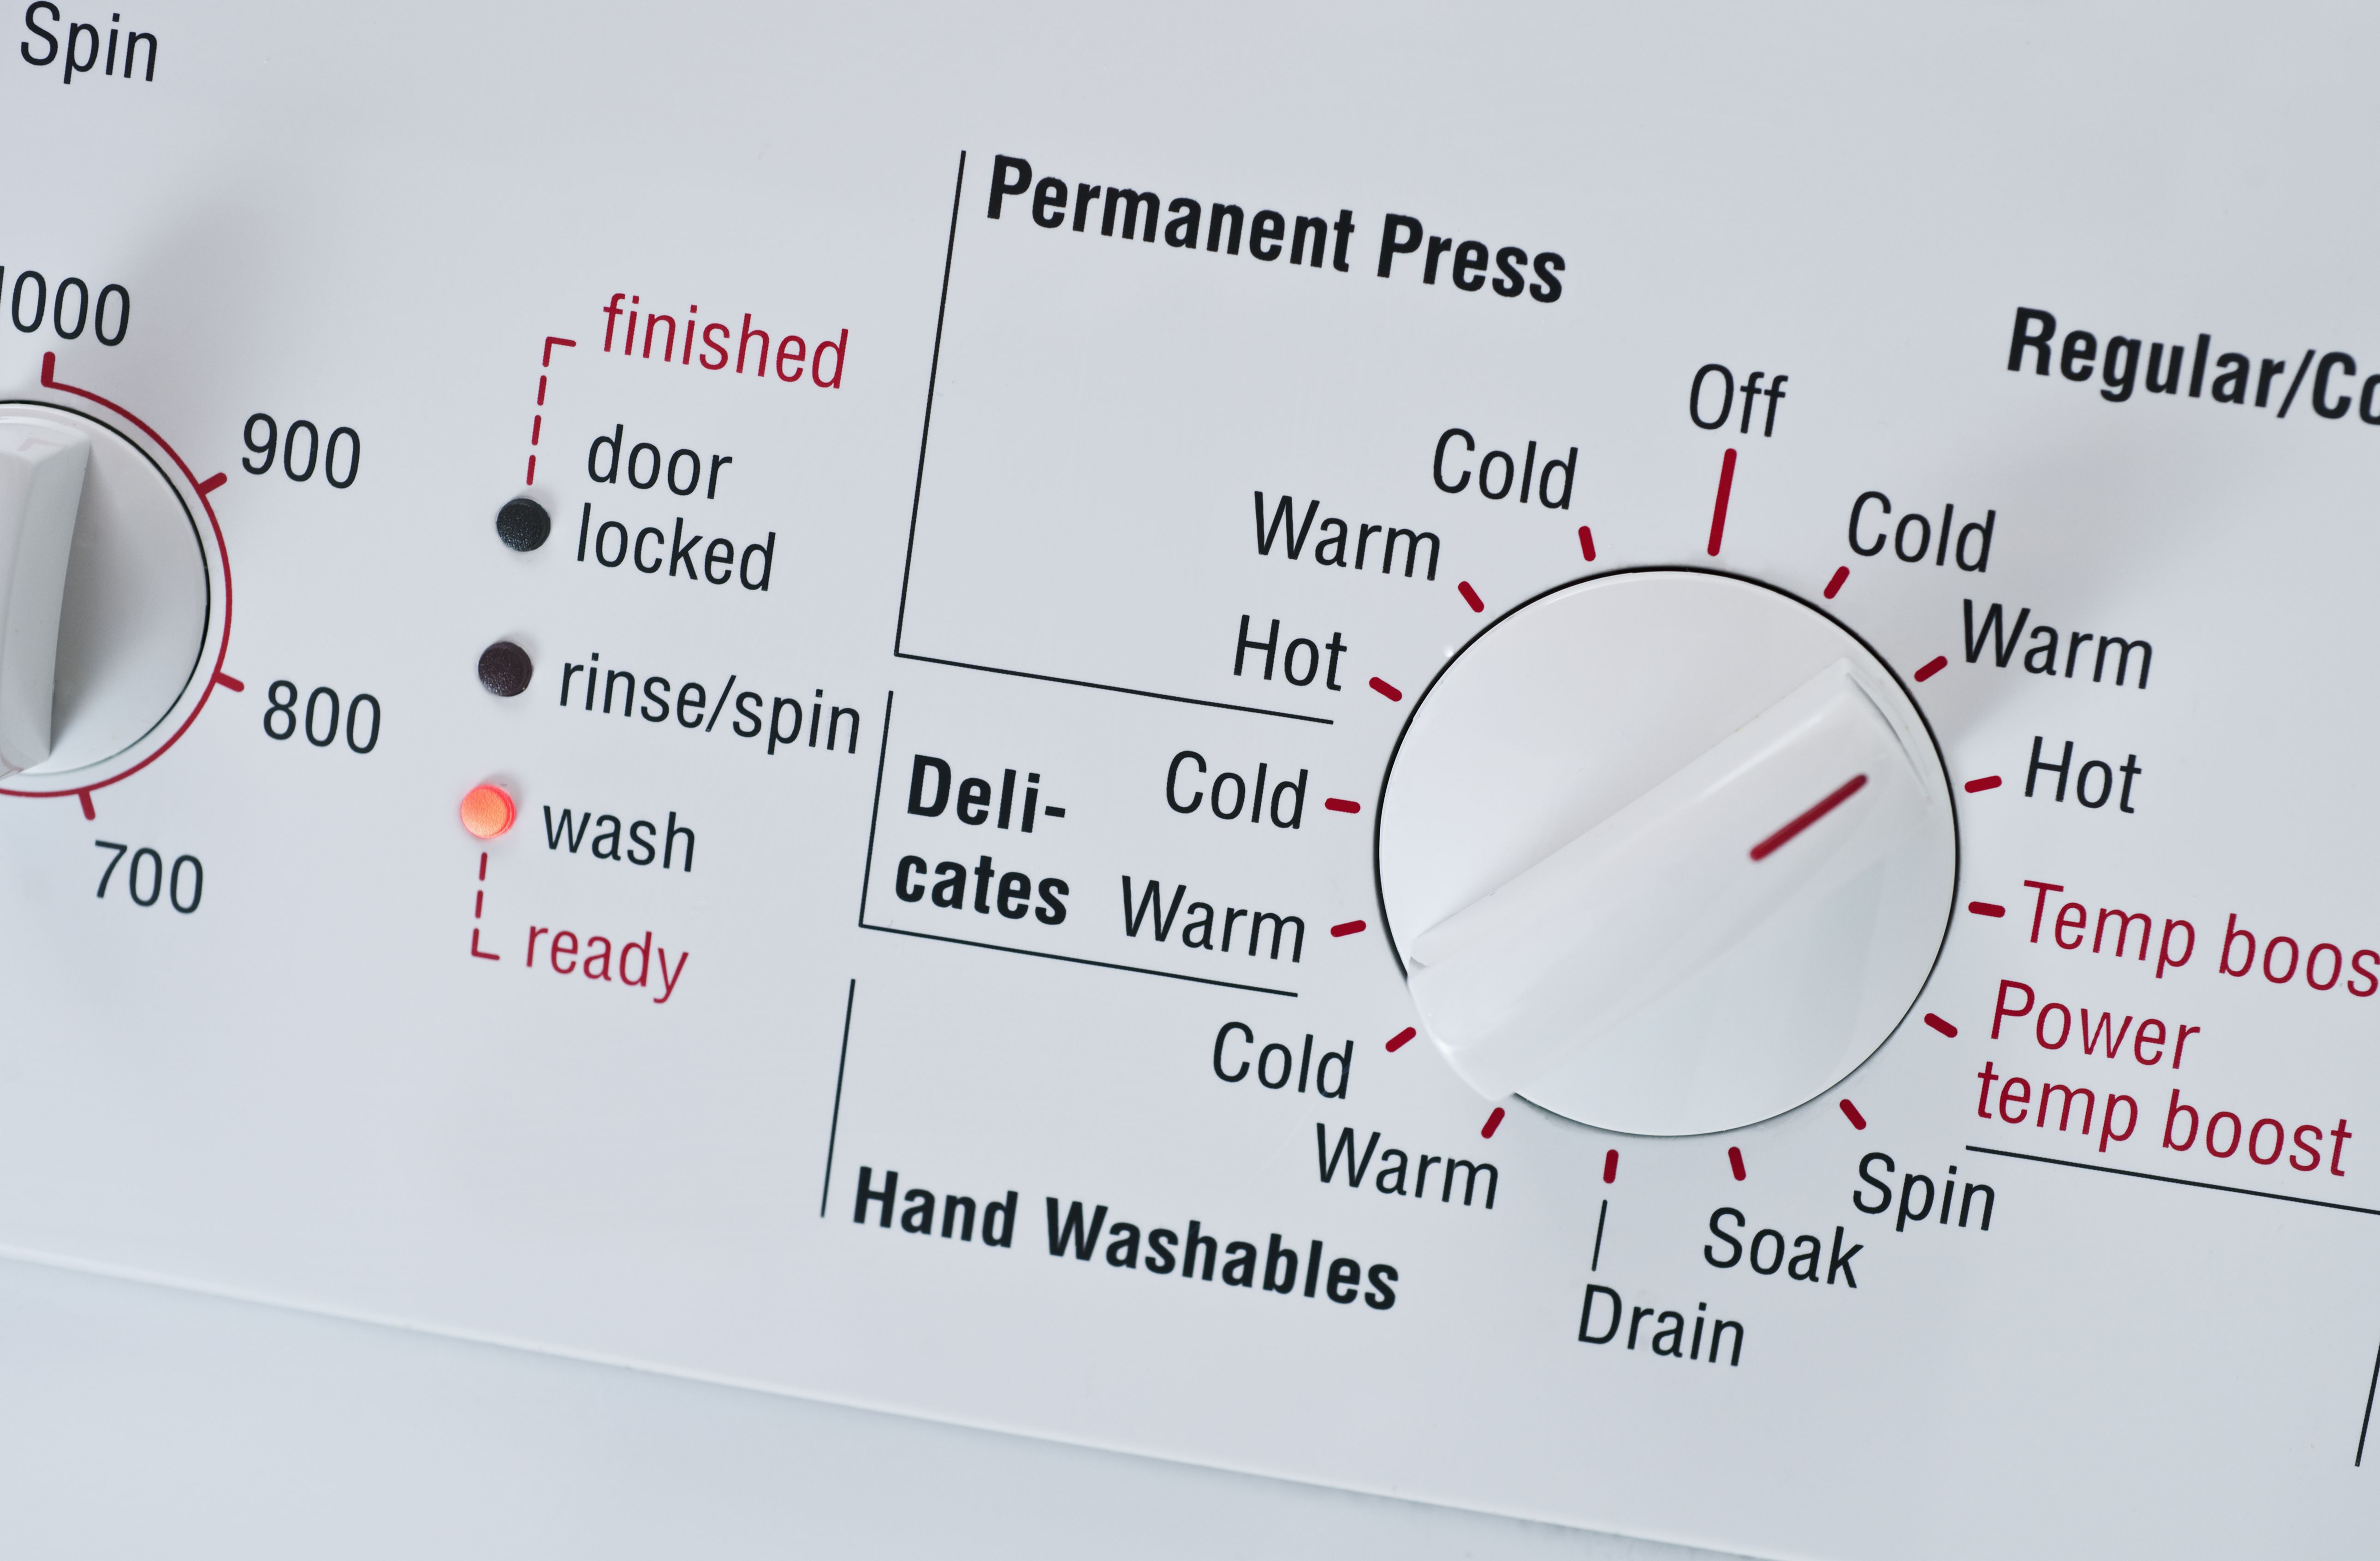 Dial on a washing machine that lists temperatures.